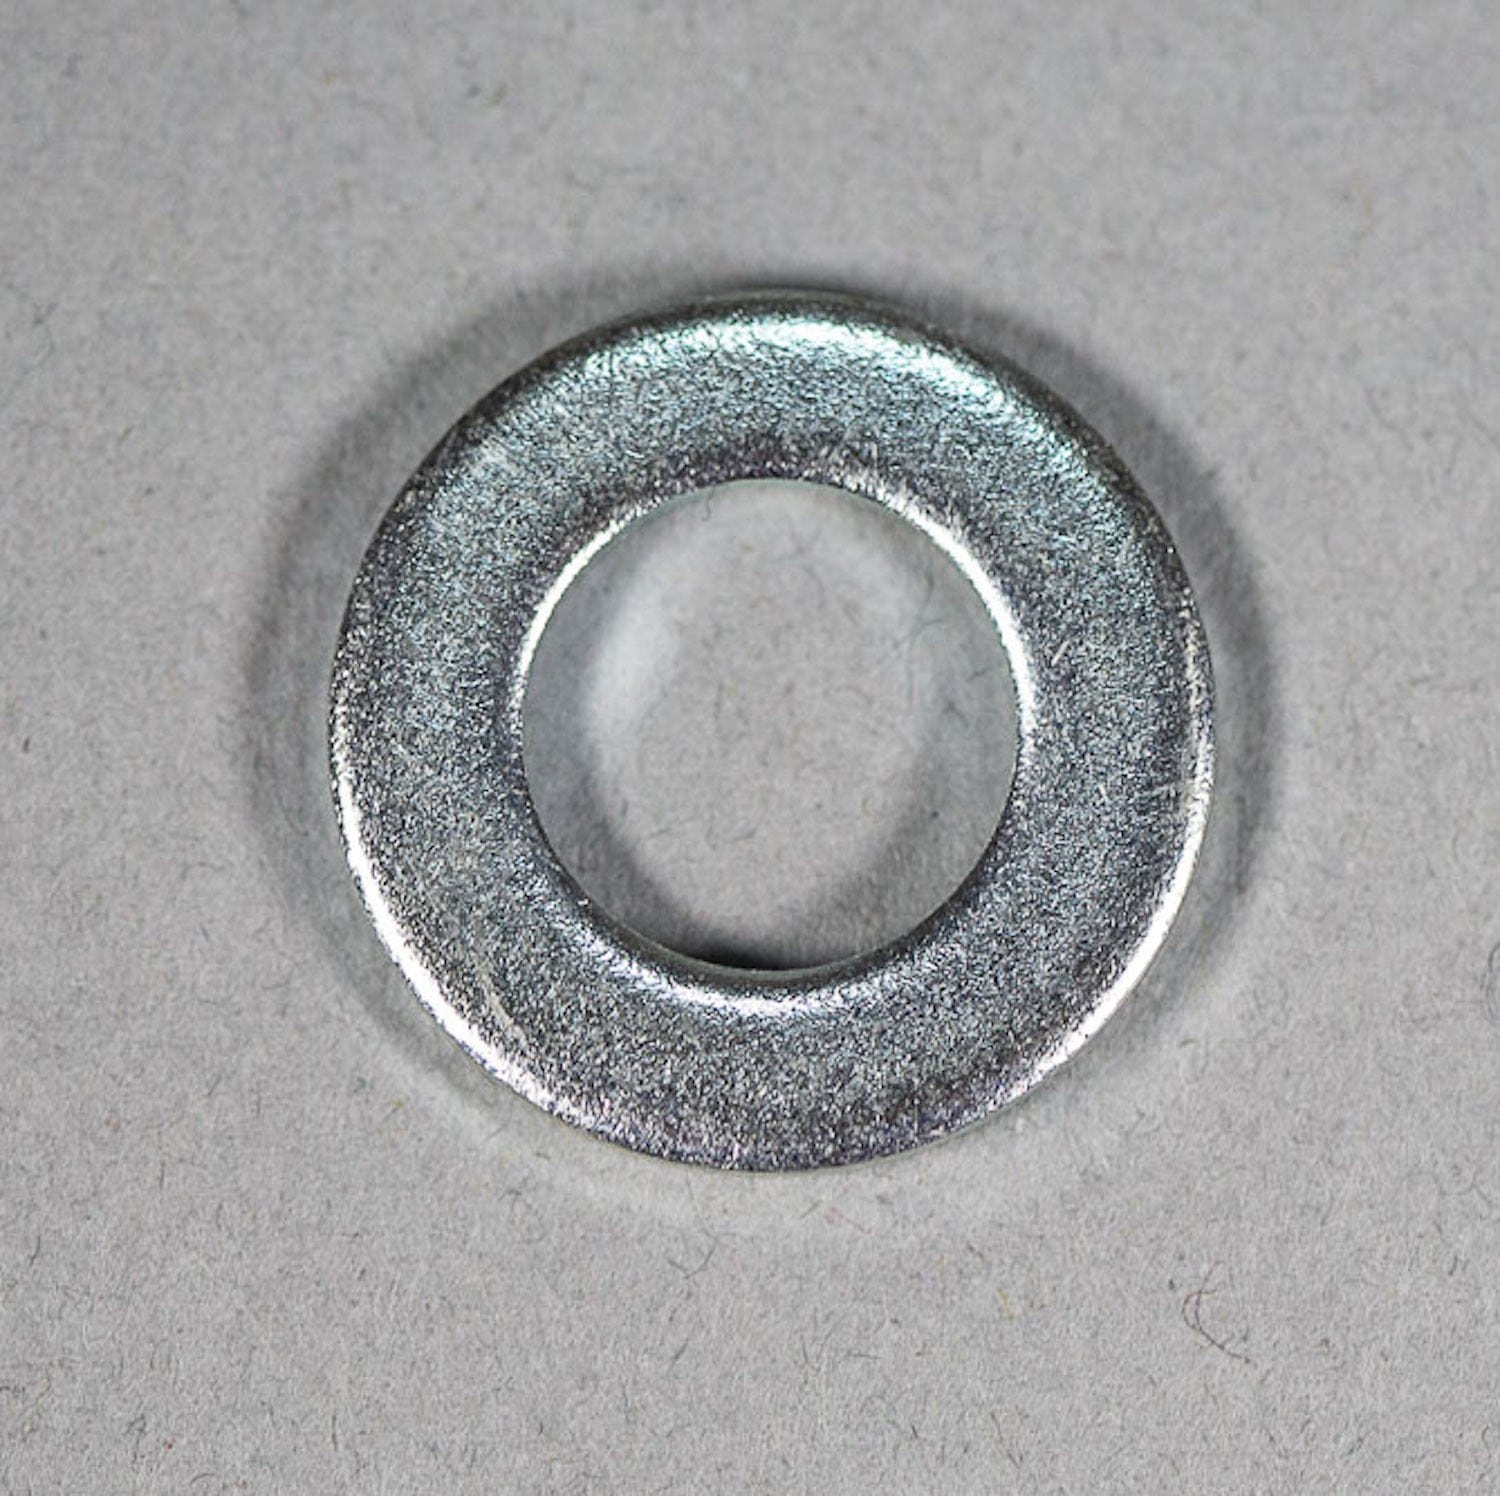 Flat Stainless Steel Washer .375 x.875x.065 - Woodcraft Technologies - Motorcycle Parts